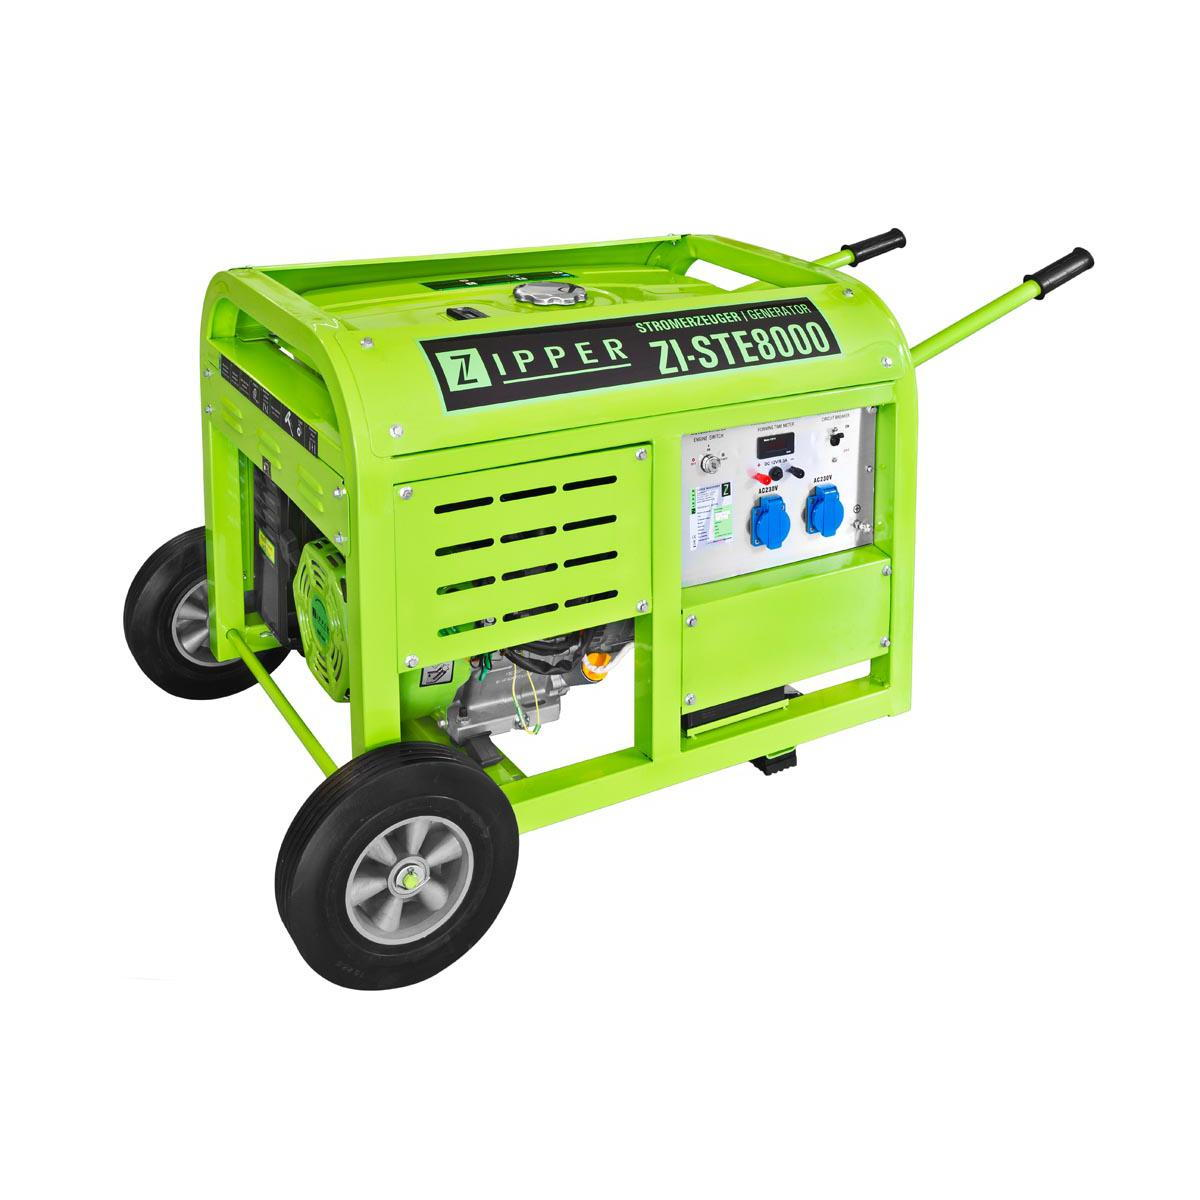 Image of   ZI-STE8000 Generator med el-start